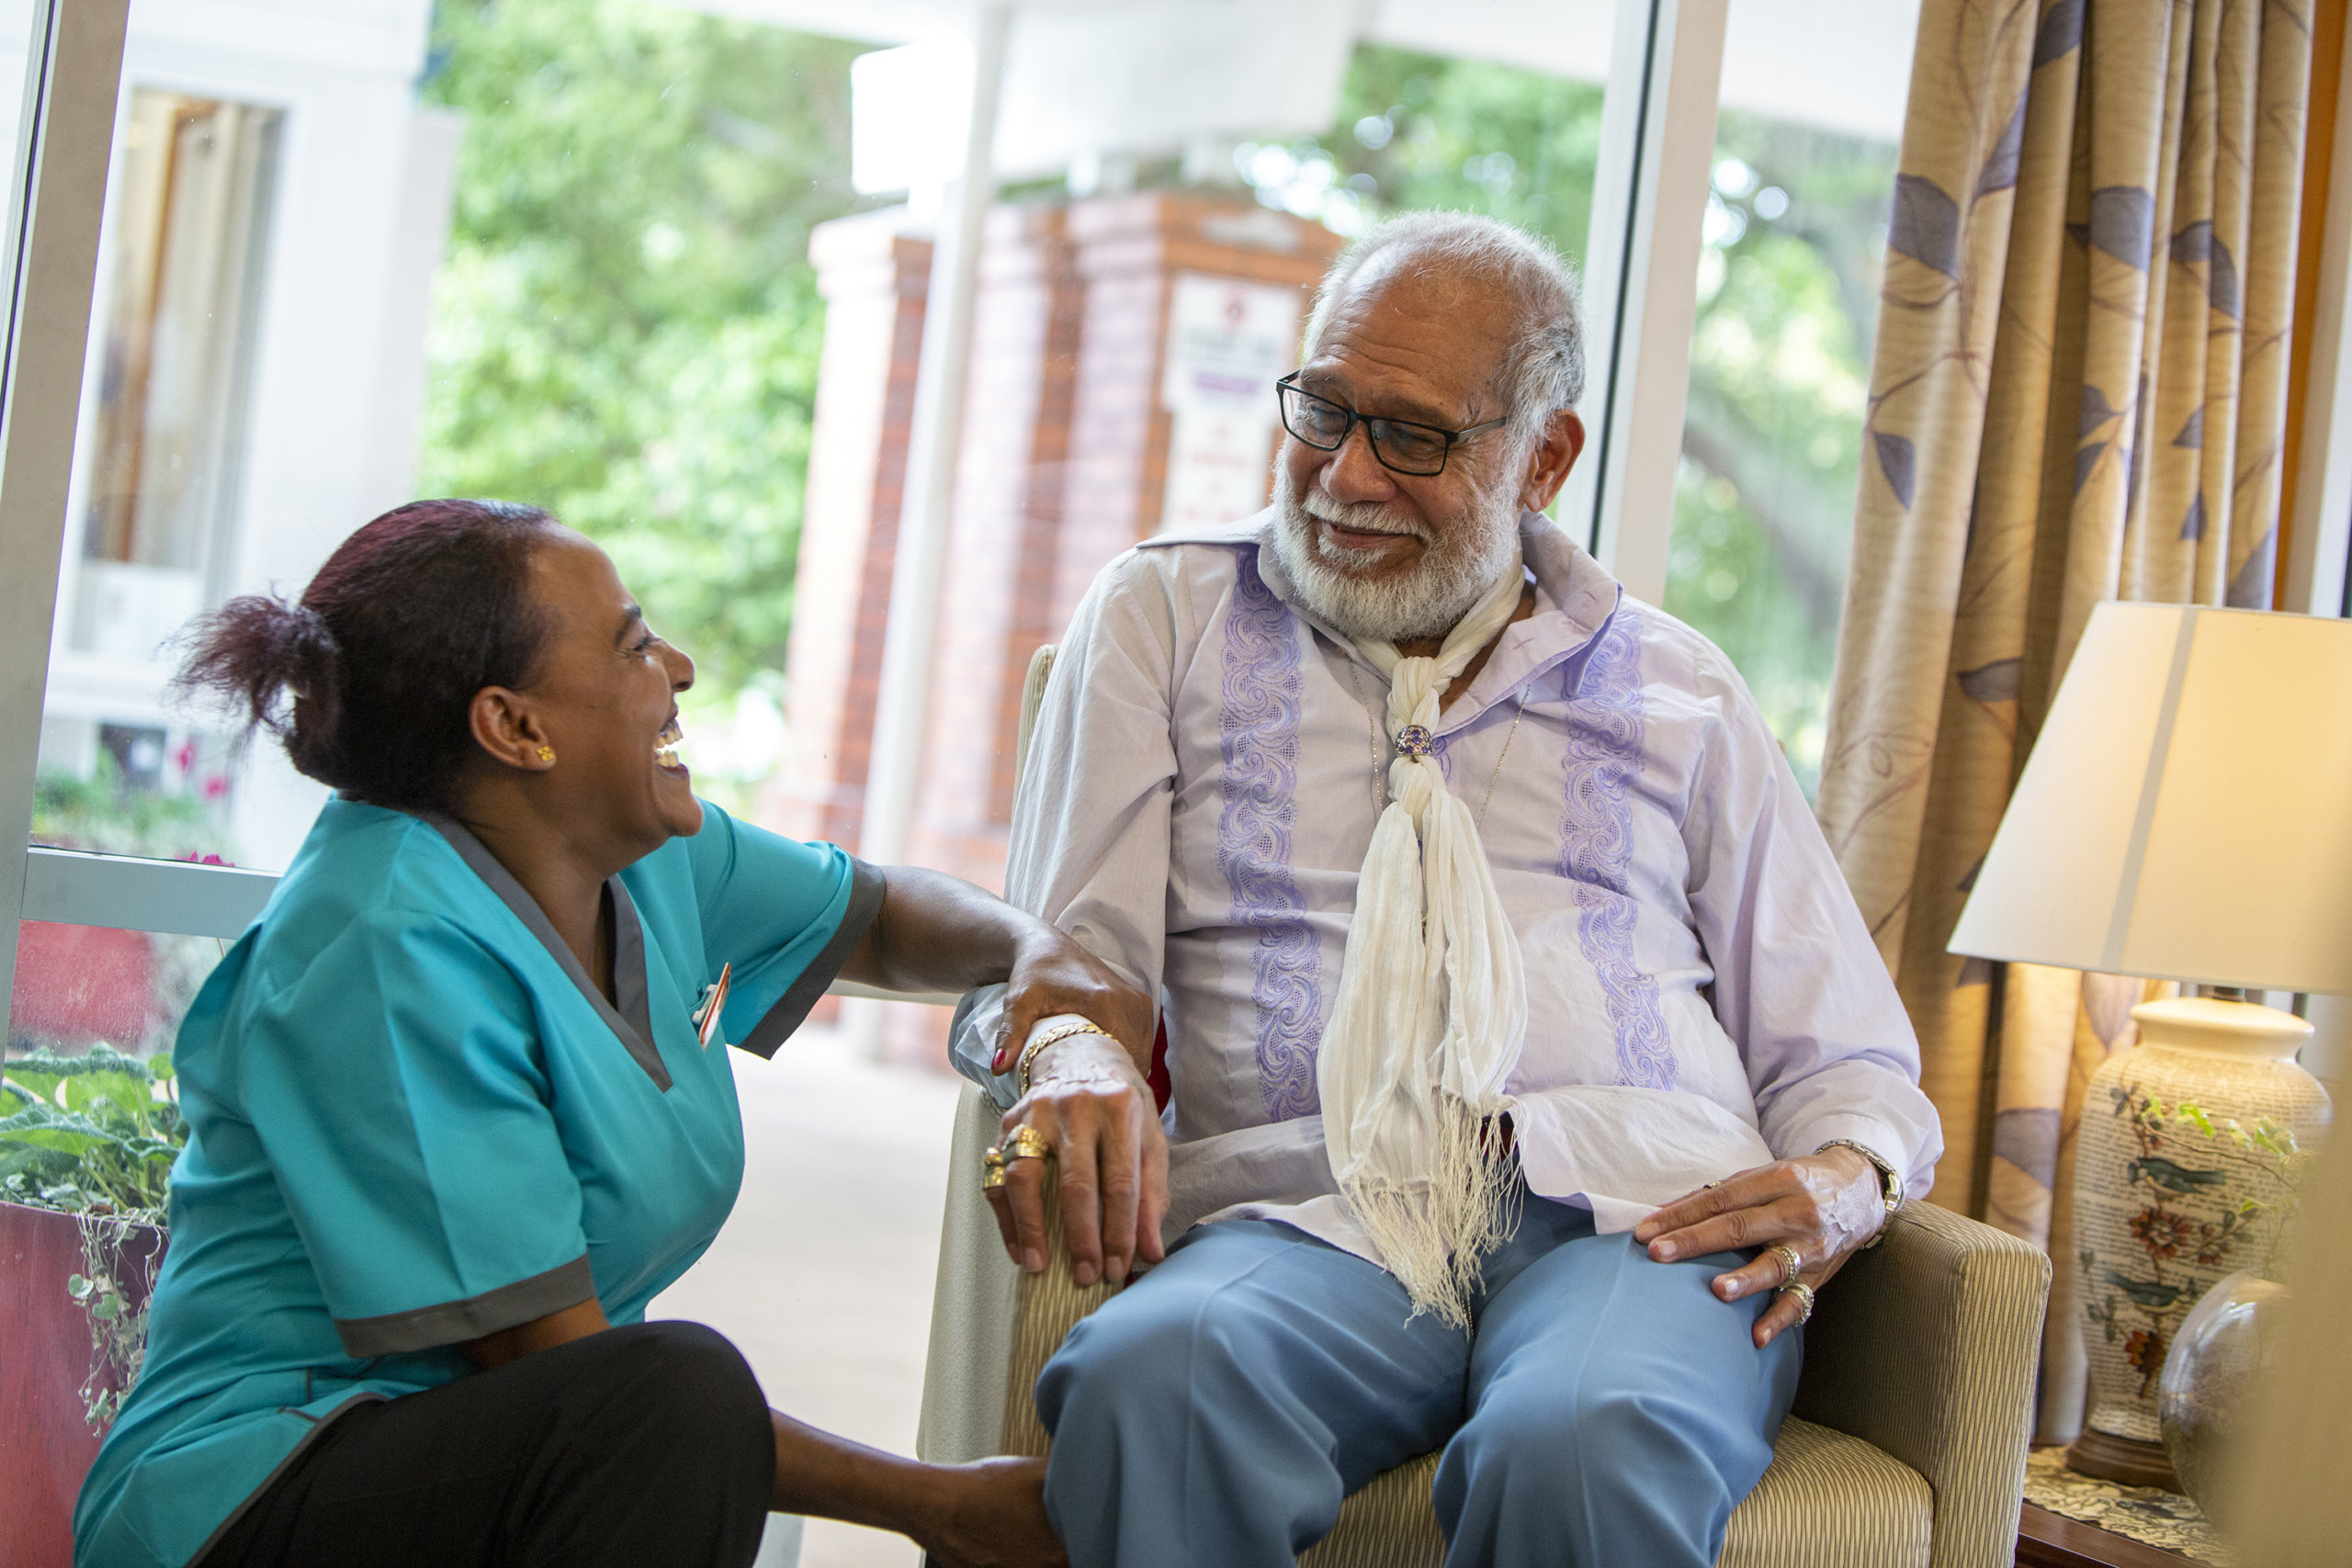 Care resident laughing with Healthcare Assistant